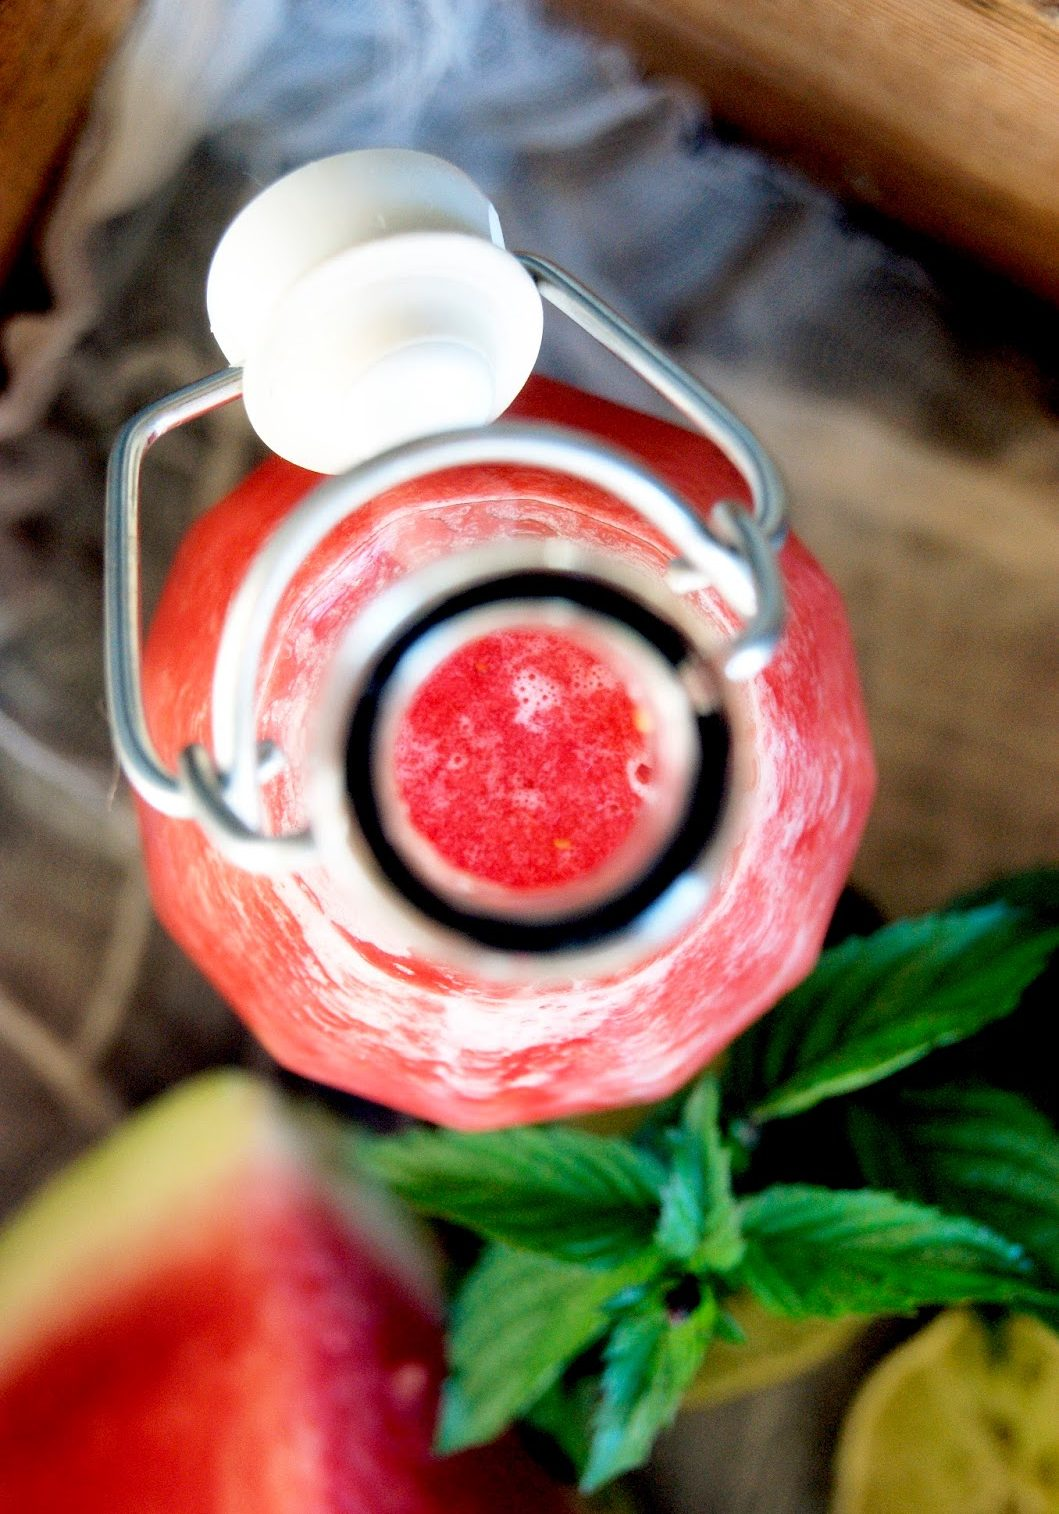 A top down view of a glass bottle with watermelon juice inside